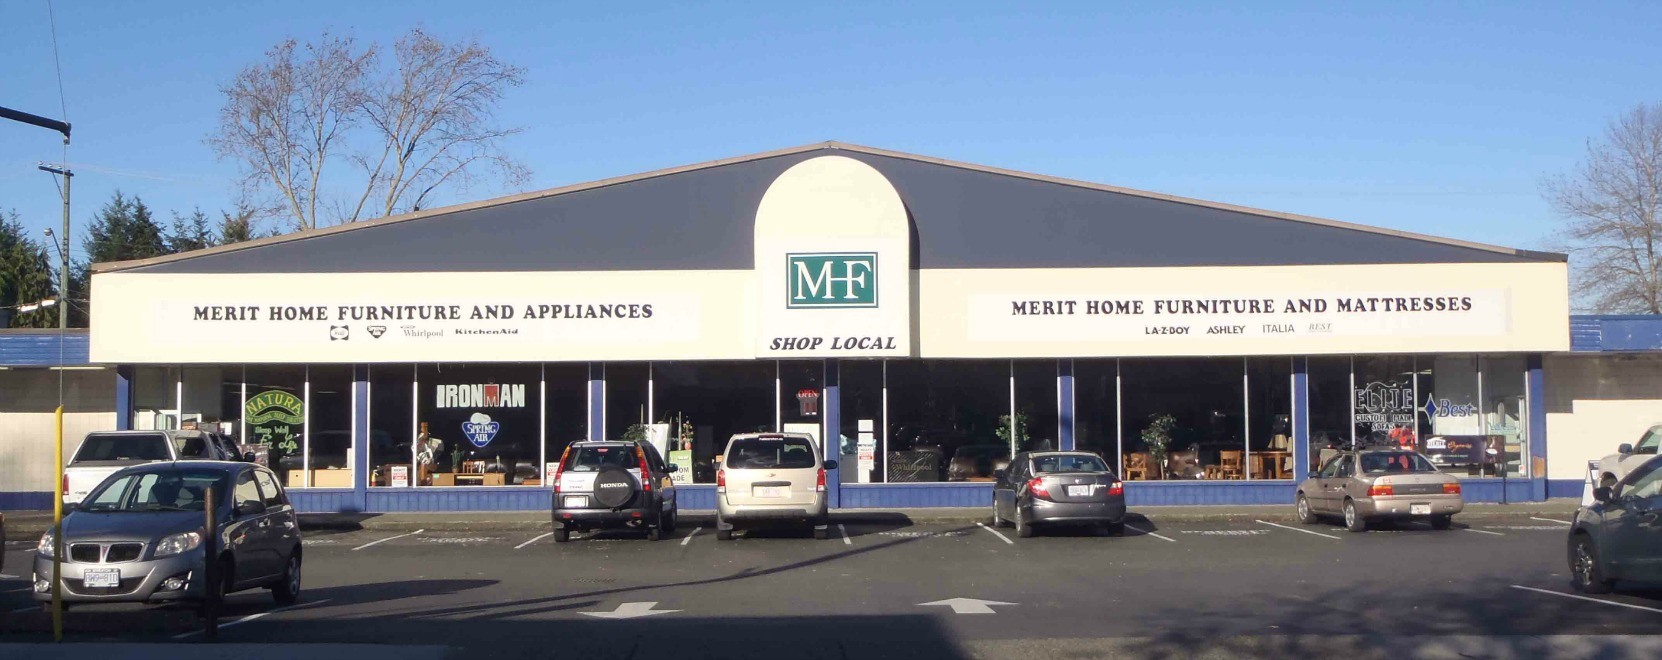 The Merit Home Furniture store, 107 Ingram Street. The building was originally built in 1967 at a Shop Easy grocery store.